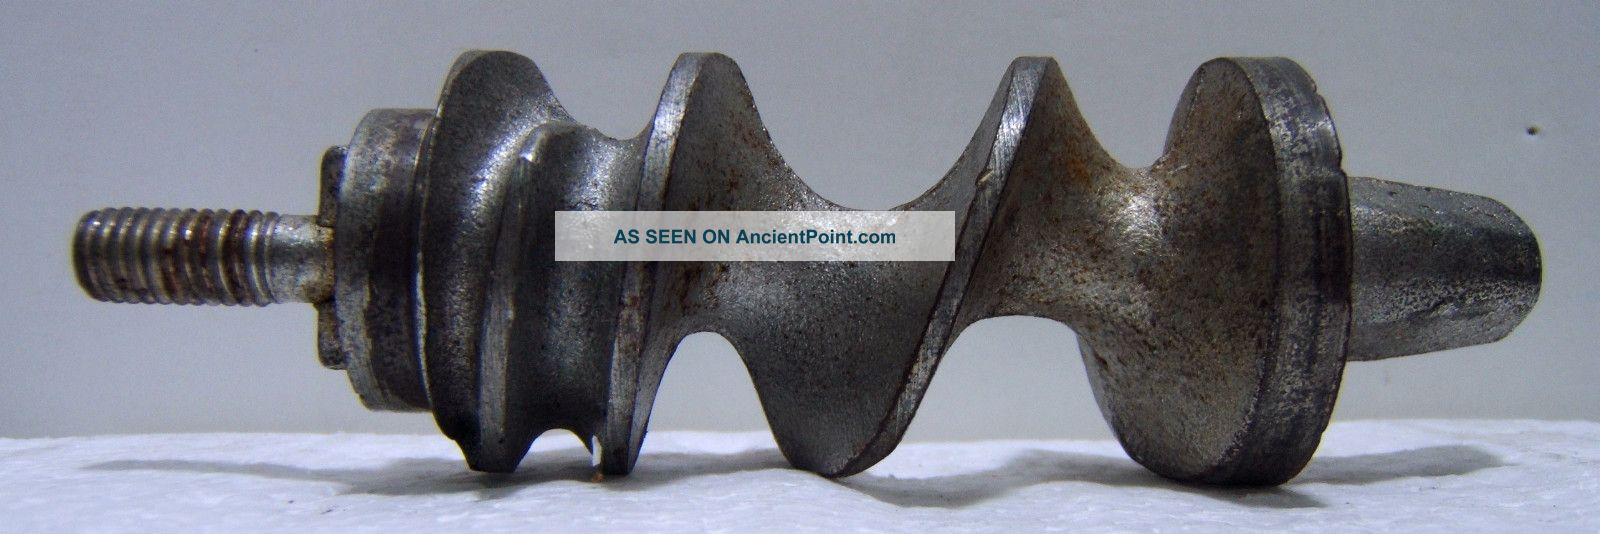 Universal Meat/ Coffee Grinder Auger/ Corkscrew,  Usa Made,  Off A 2 Grinder Meat Grinders photo